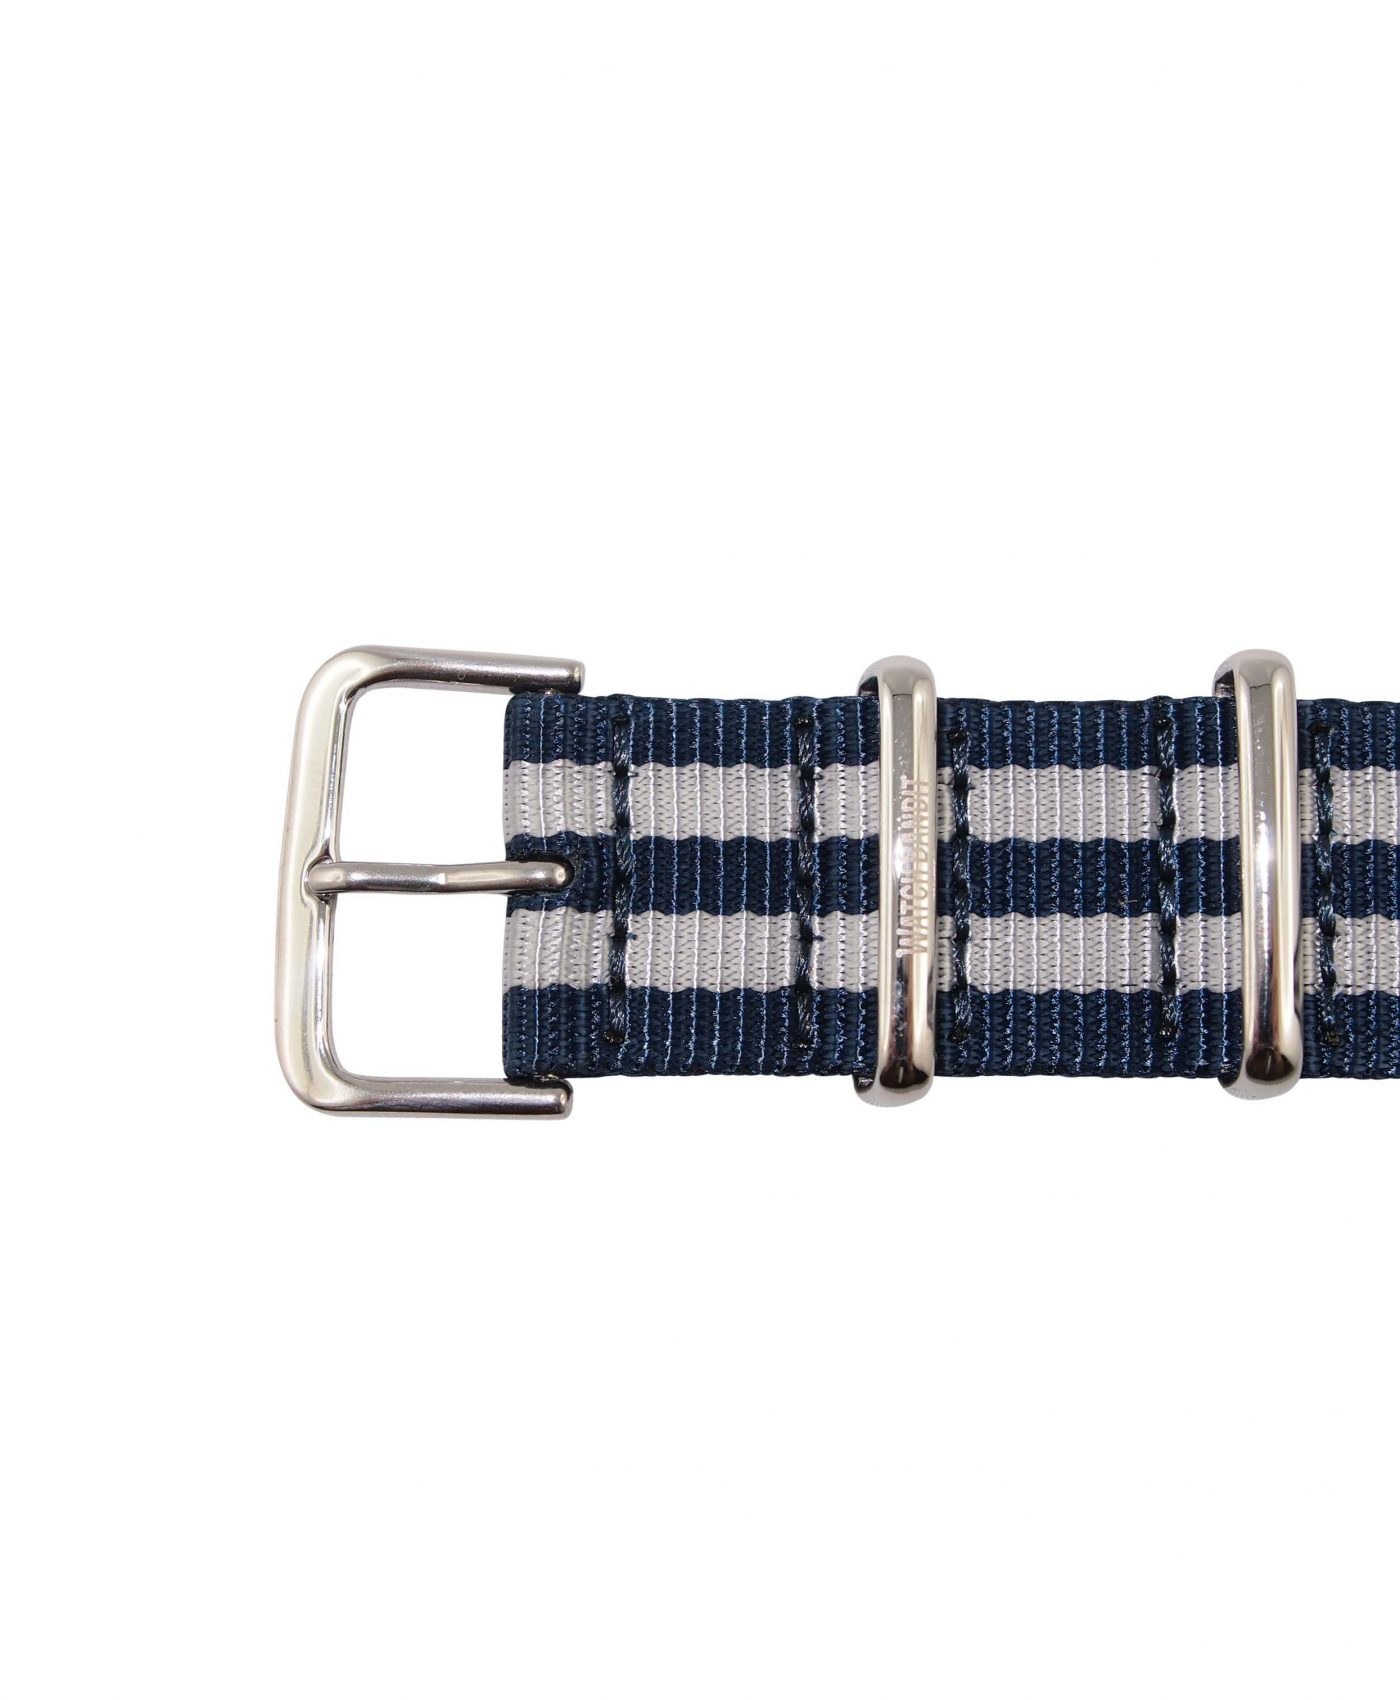 Nato Strap | Blue & White | Polished | 20 mm